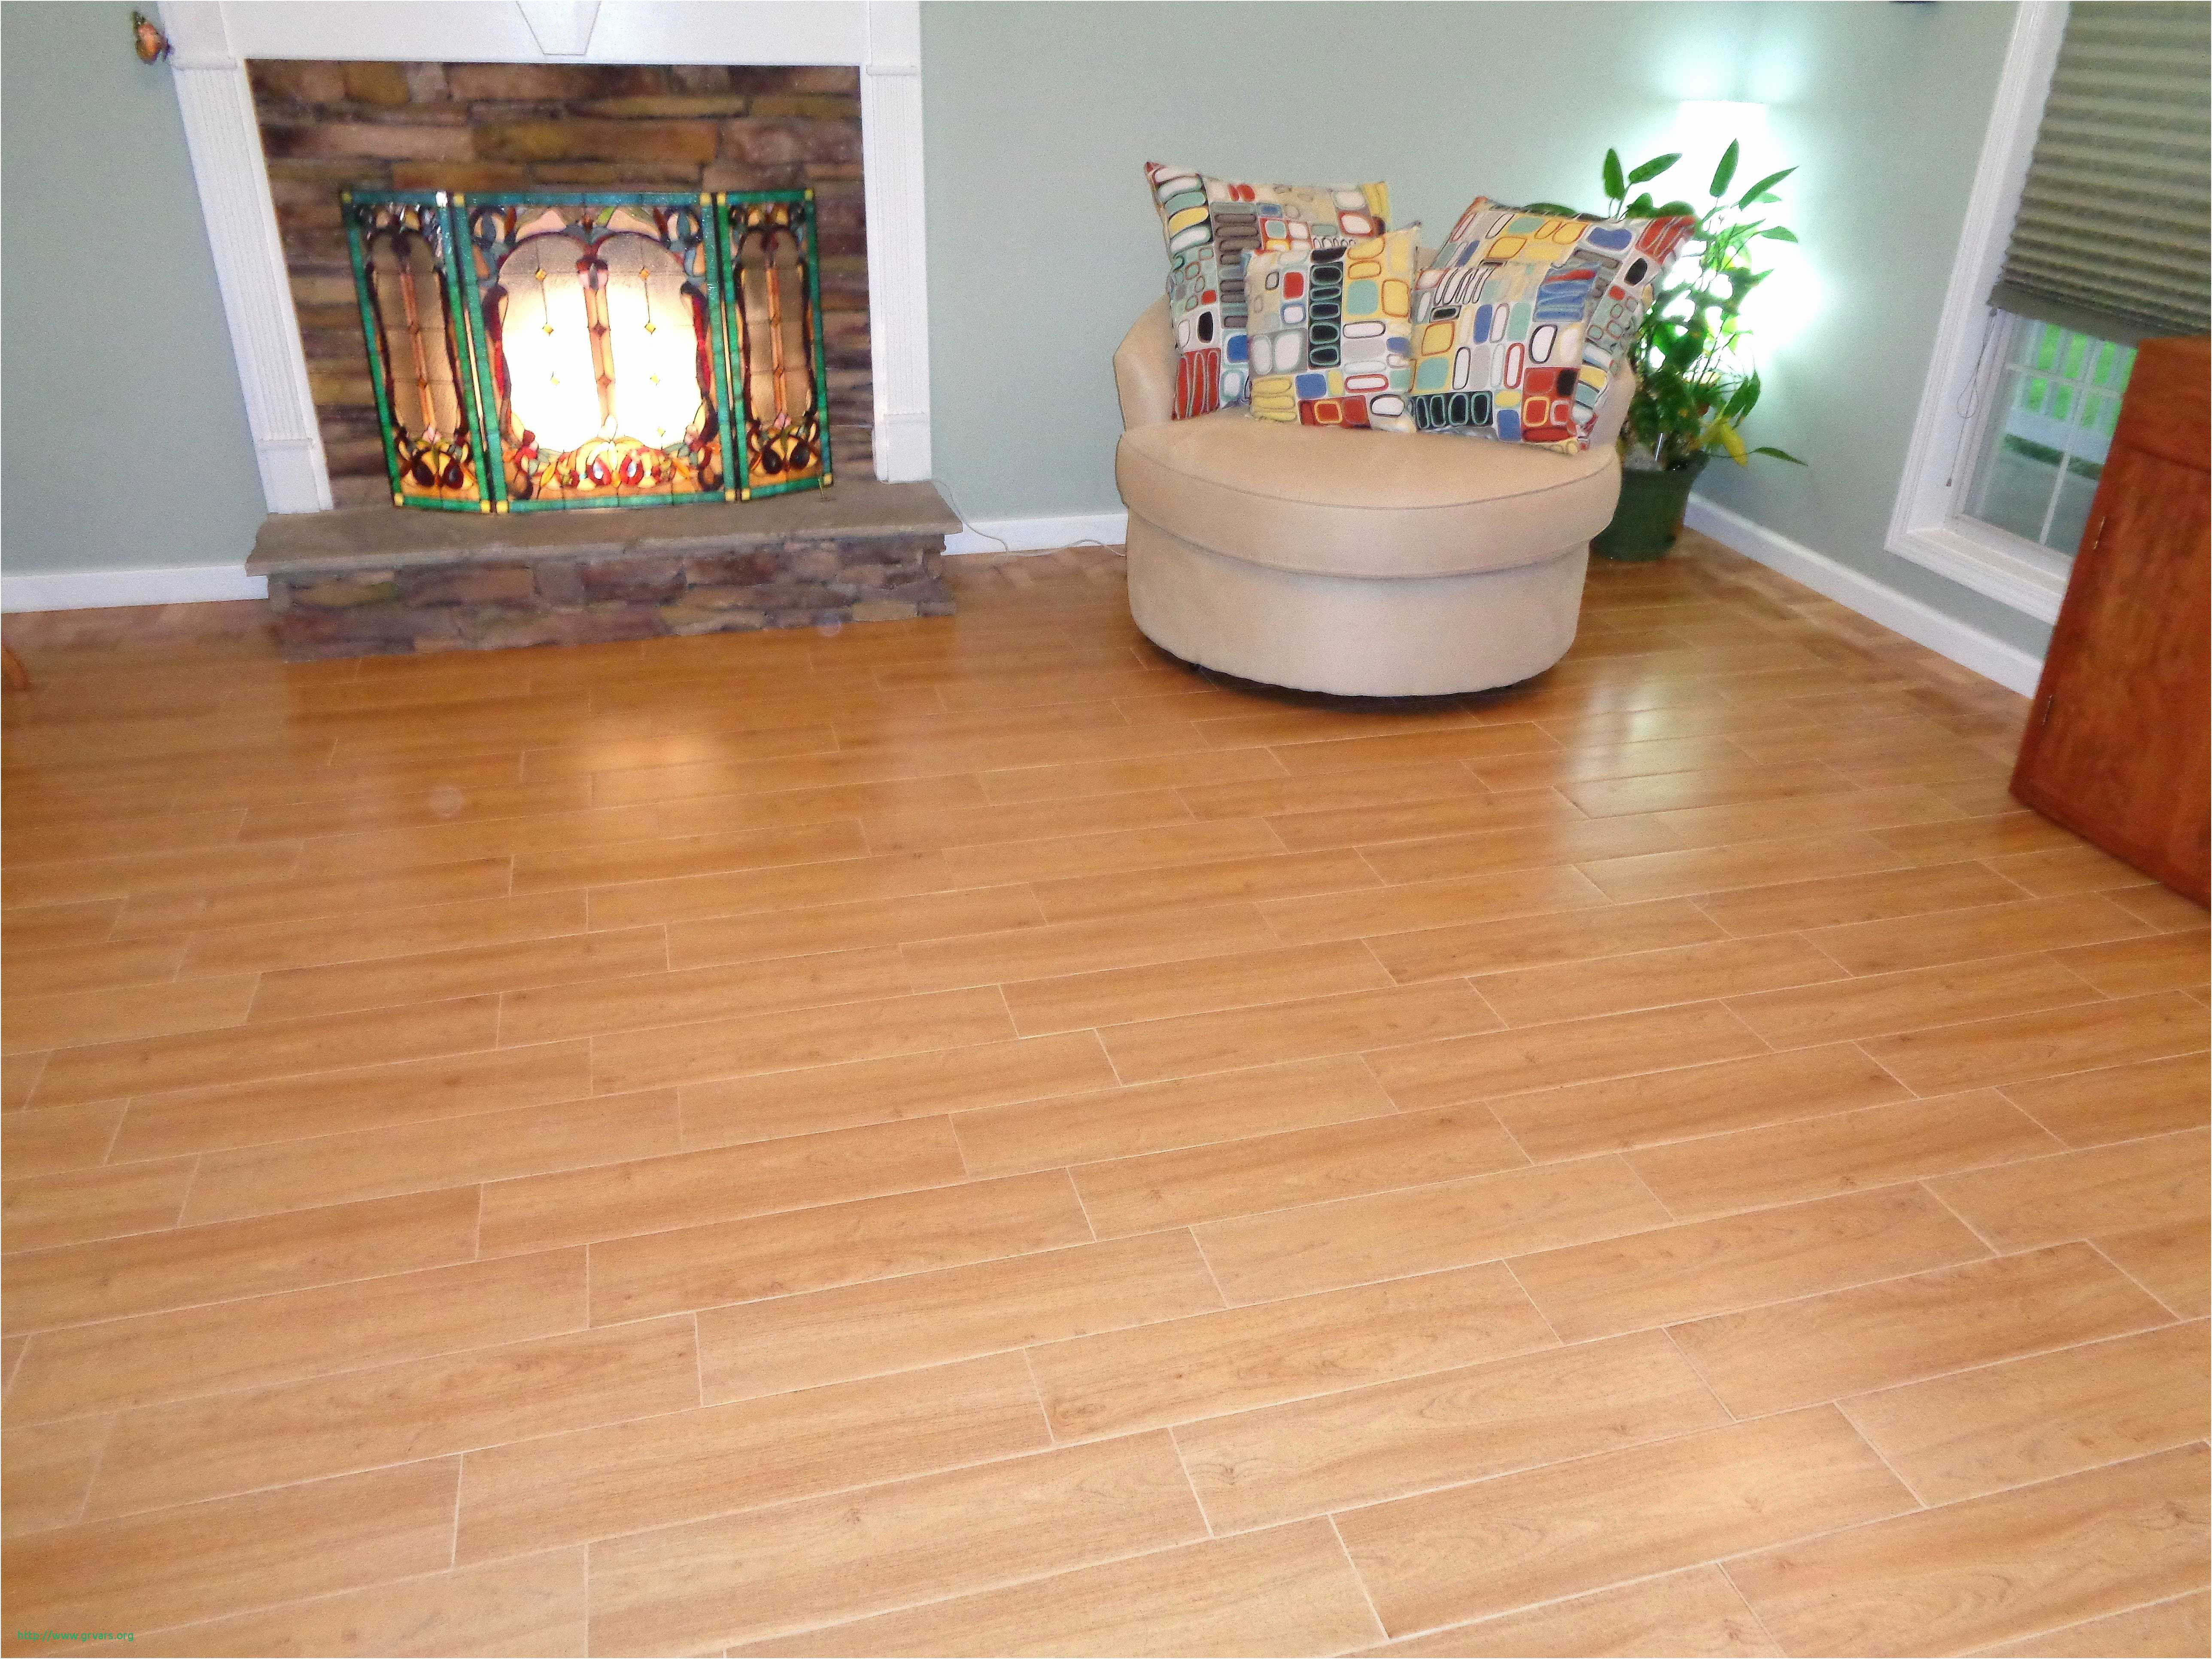 hardwood floor border patterns of 24 beau changing the color of hardwood floors ideas blog pertaining to changing the color of hardwood floors inspirant pergo flooring colors concrete tom tarrant space ideas pinterest